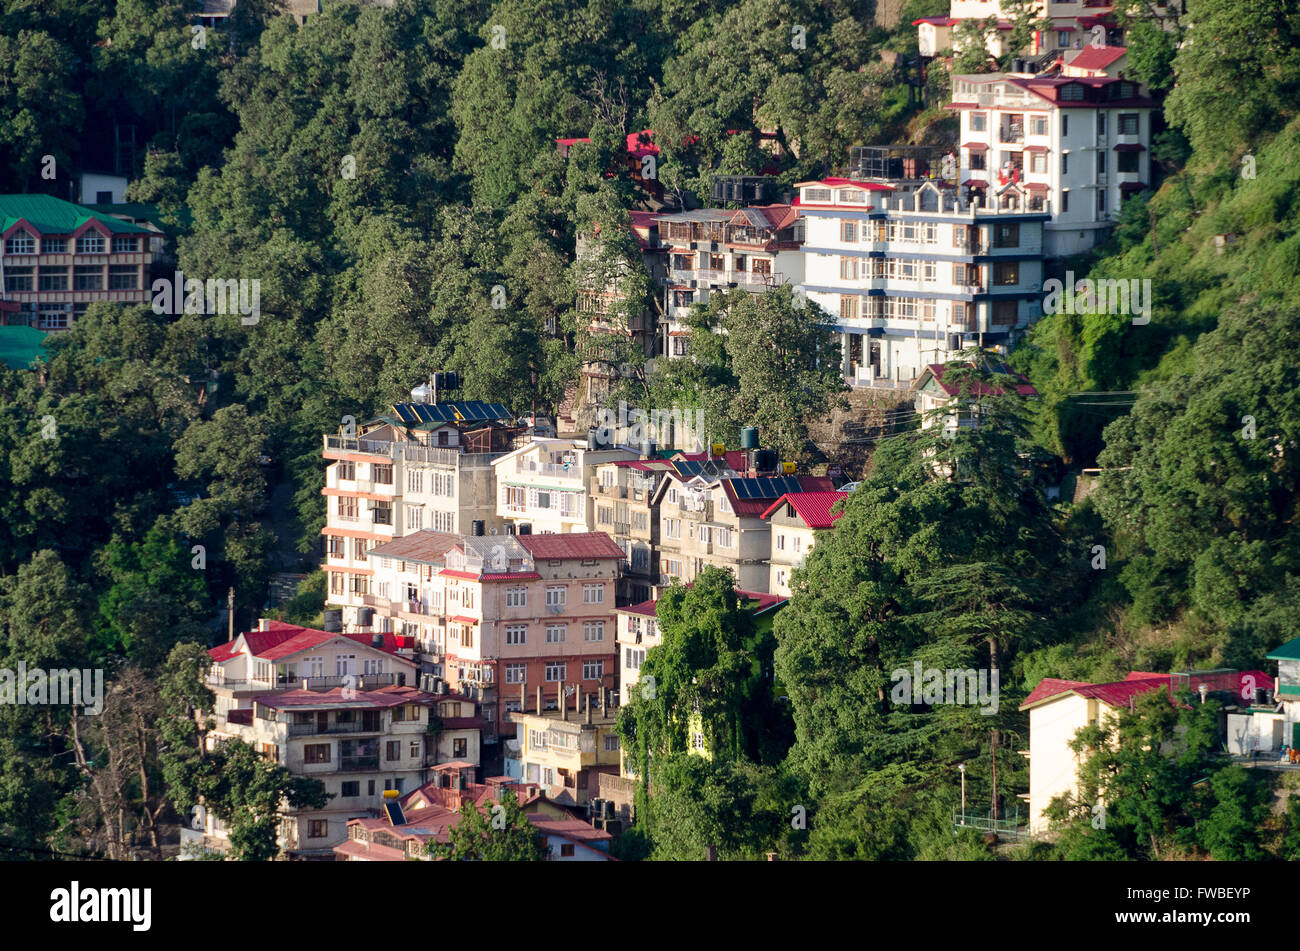 Houses on hillside, Shimla, Himachal Pradesh, India. Stock Photo